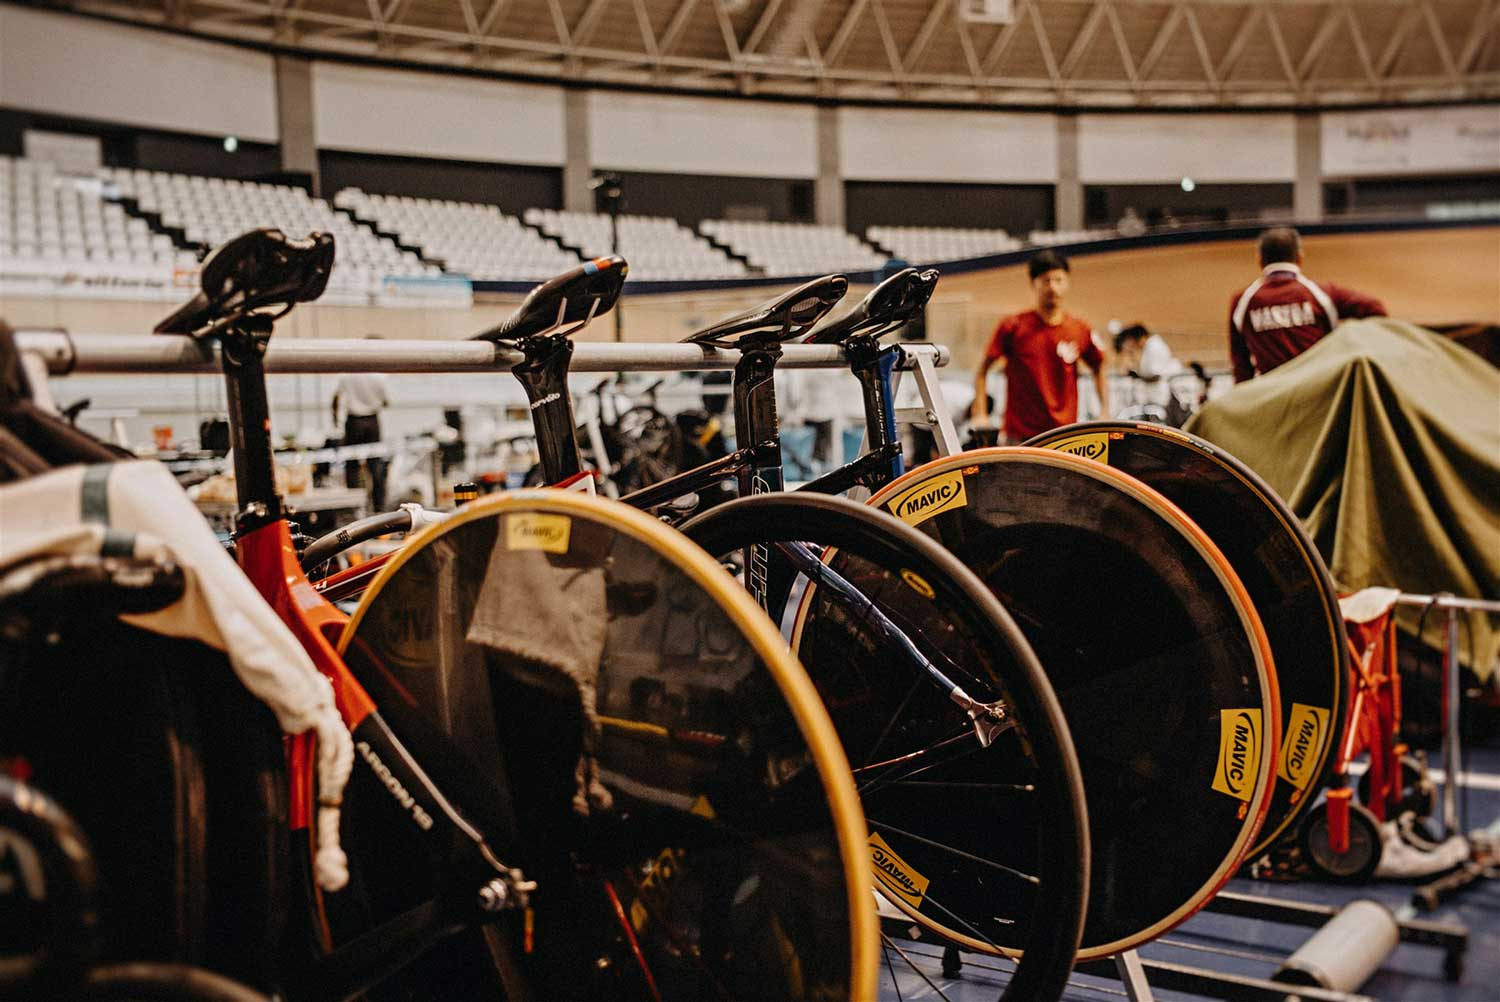 Track cycling bikes all lined uo ready for the National Keirin Championships at Izu Velodrome, Japan